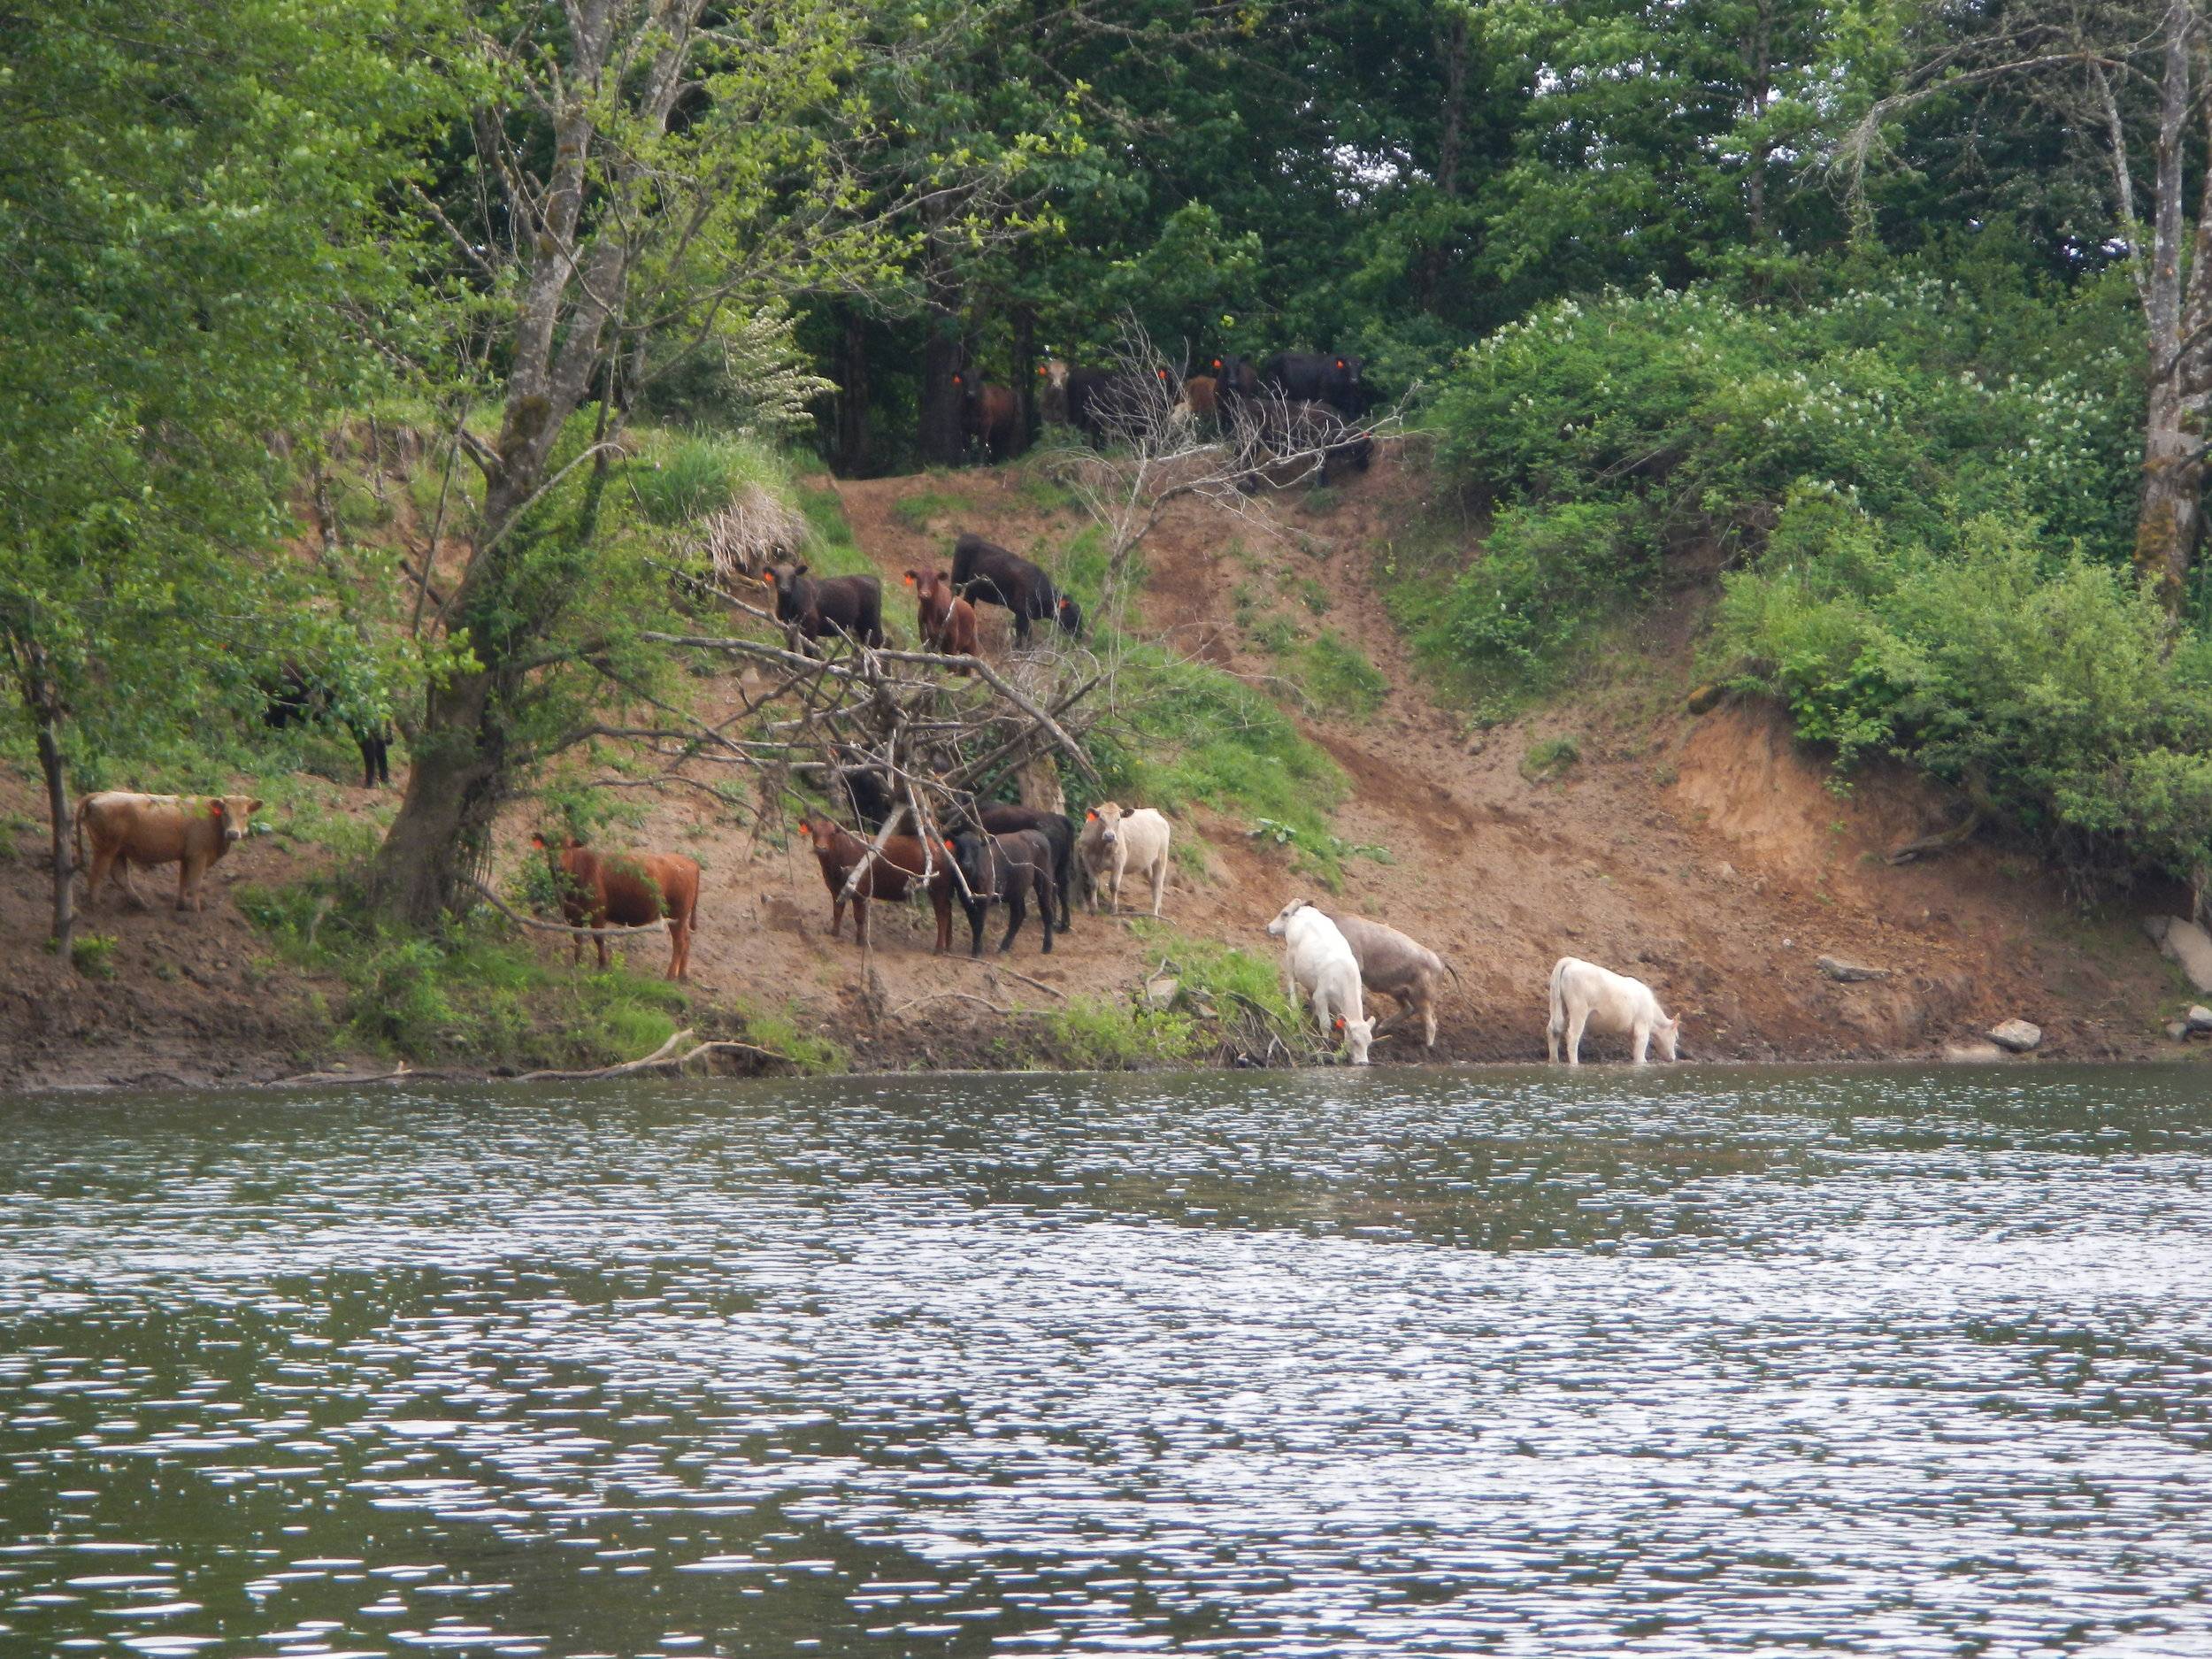 Washington Department of Ecology: (509)329-3400 - Contact this entity for:Destruction of riparian zones (landslides, removal of streamside vegetation)Livestock issues (livestock density, direct access to streams or lakes, manure management issues)click here for more information